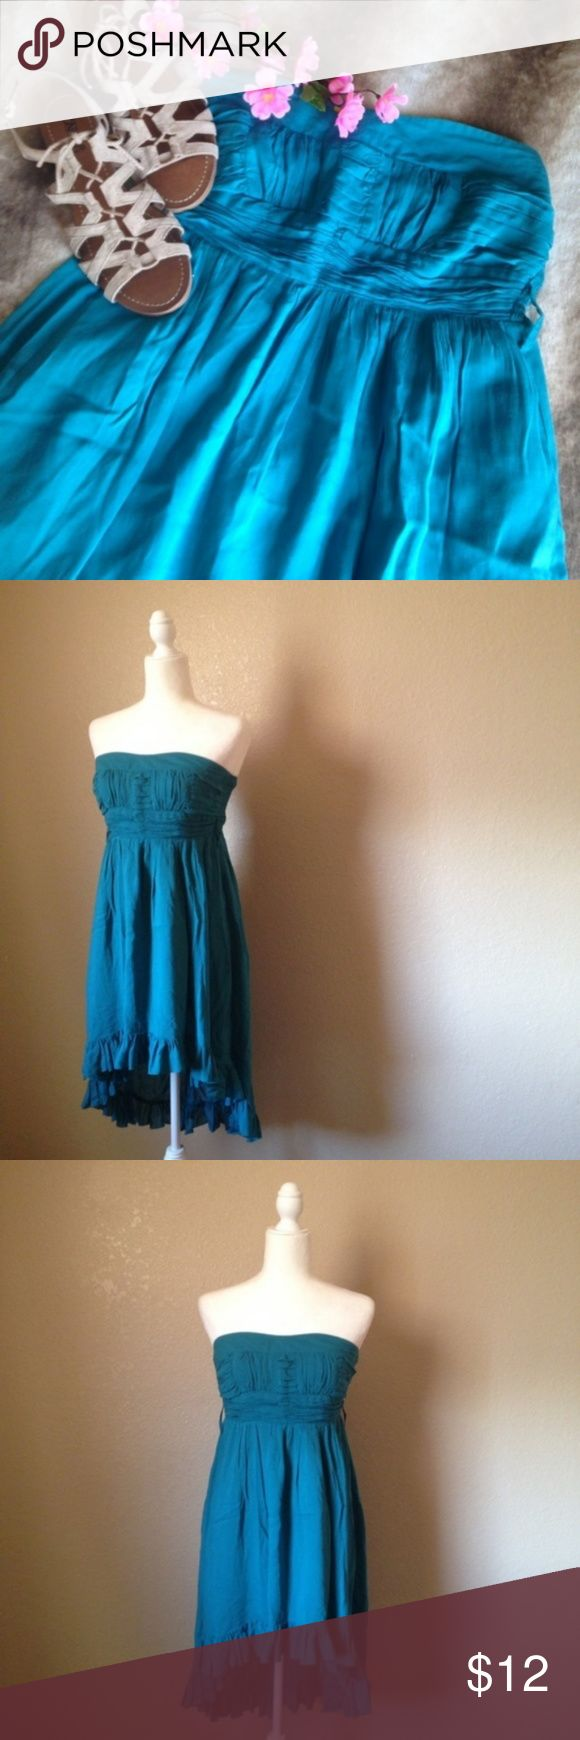 "Strapless Boho High Low Ruffled Hem Dress Super cute and lightweight, perfect summer dress! Beautiful teal color, features strapless high low empire silhouette, elastic band on back, ruched bust, belt loops, slightly pleated skirt and ruffled bottom hems. Gently used, size S. Approximately 34"" bust, 27"" front length and 39"" back length. Kariss Dresses High Low"